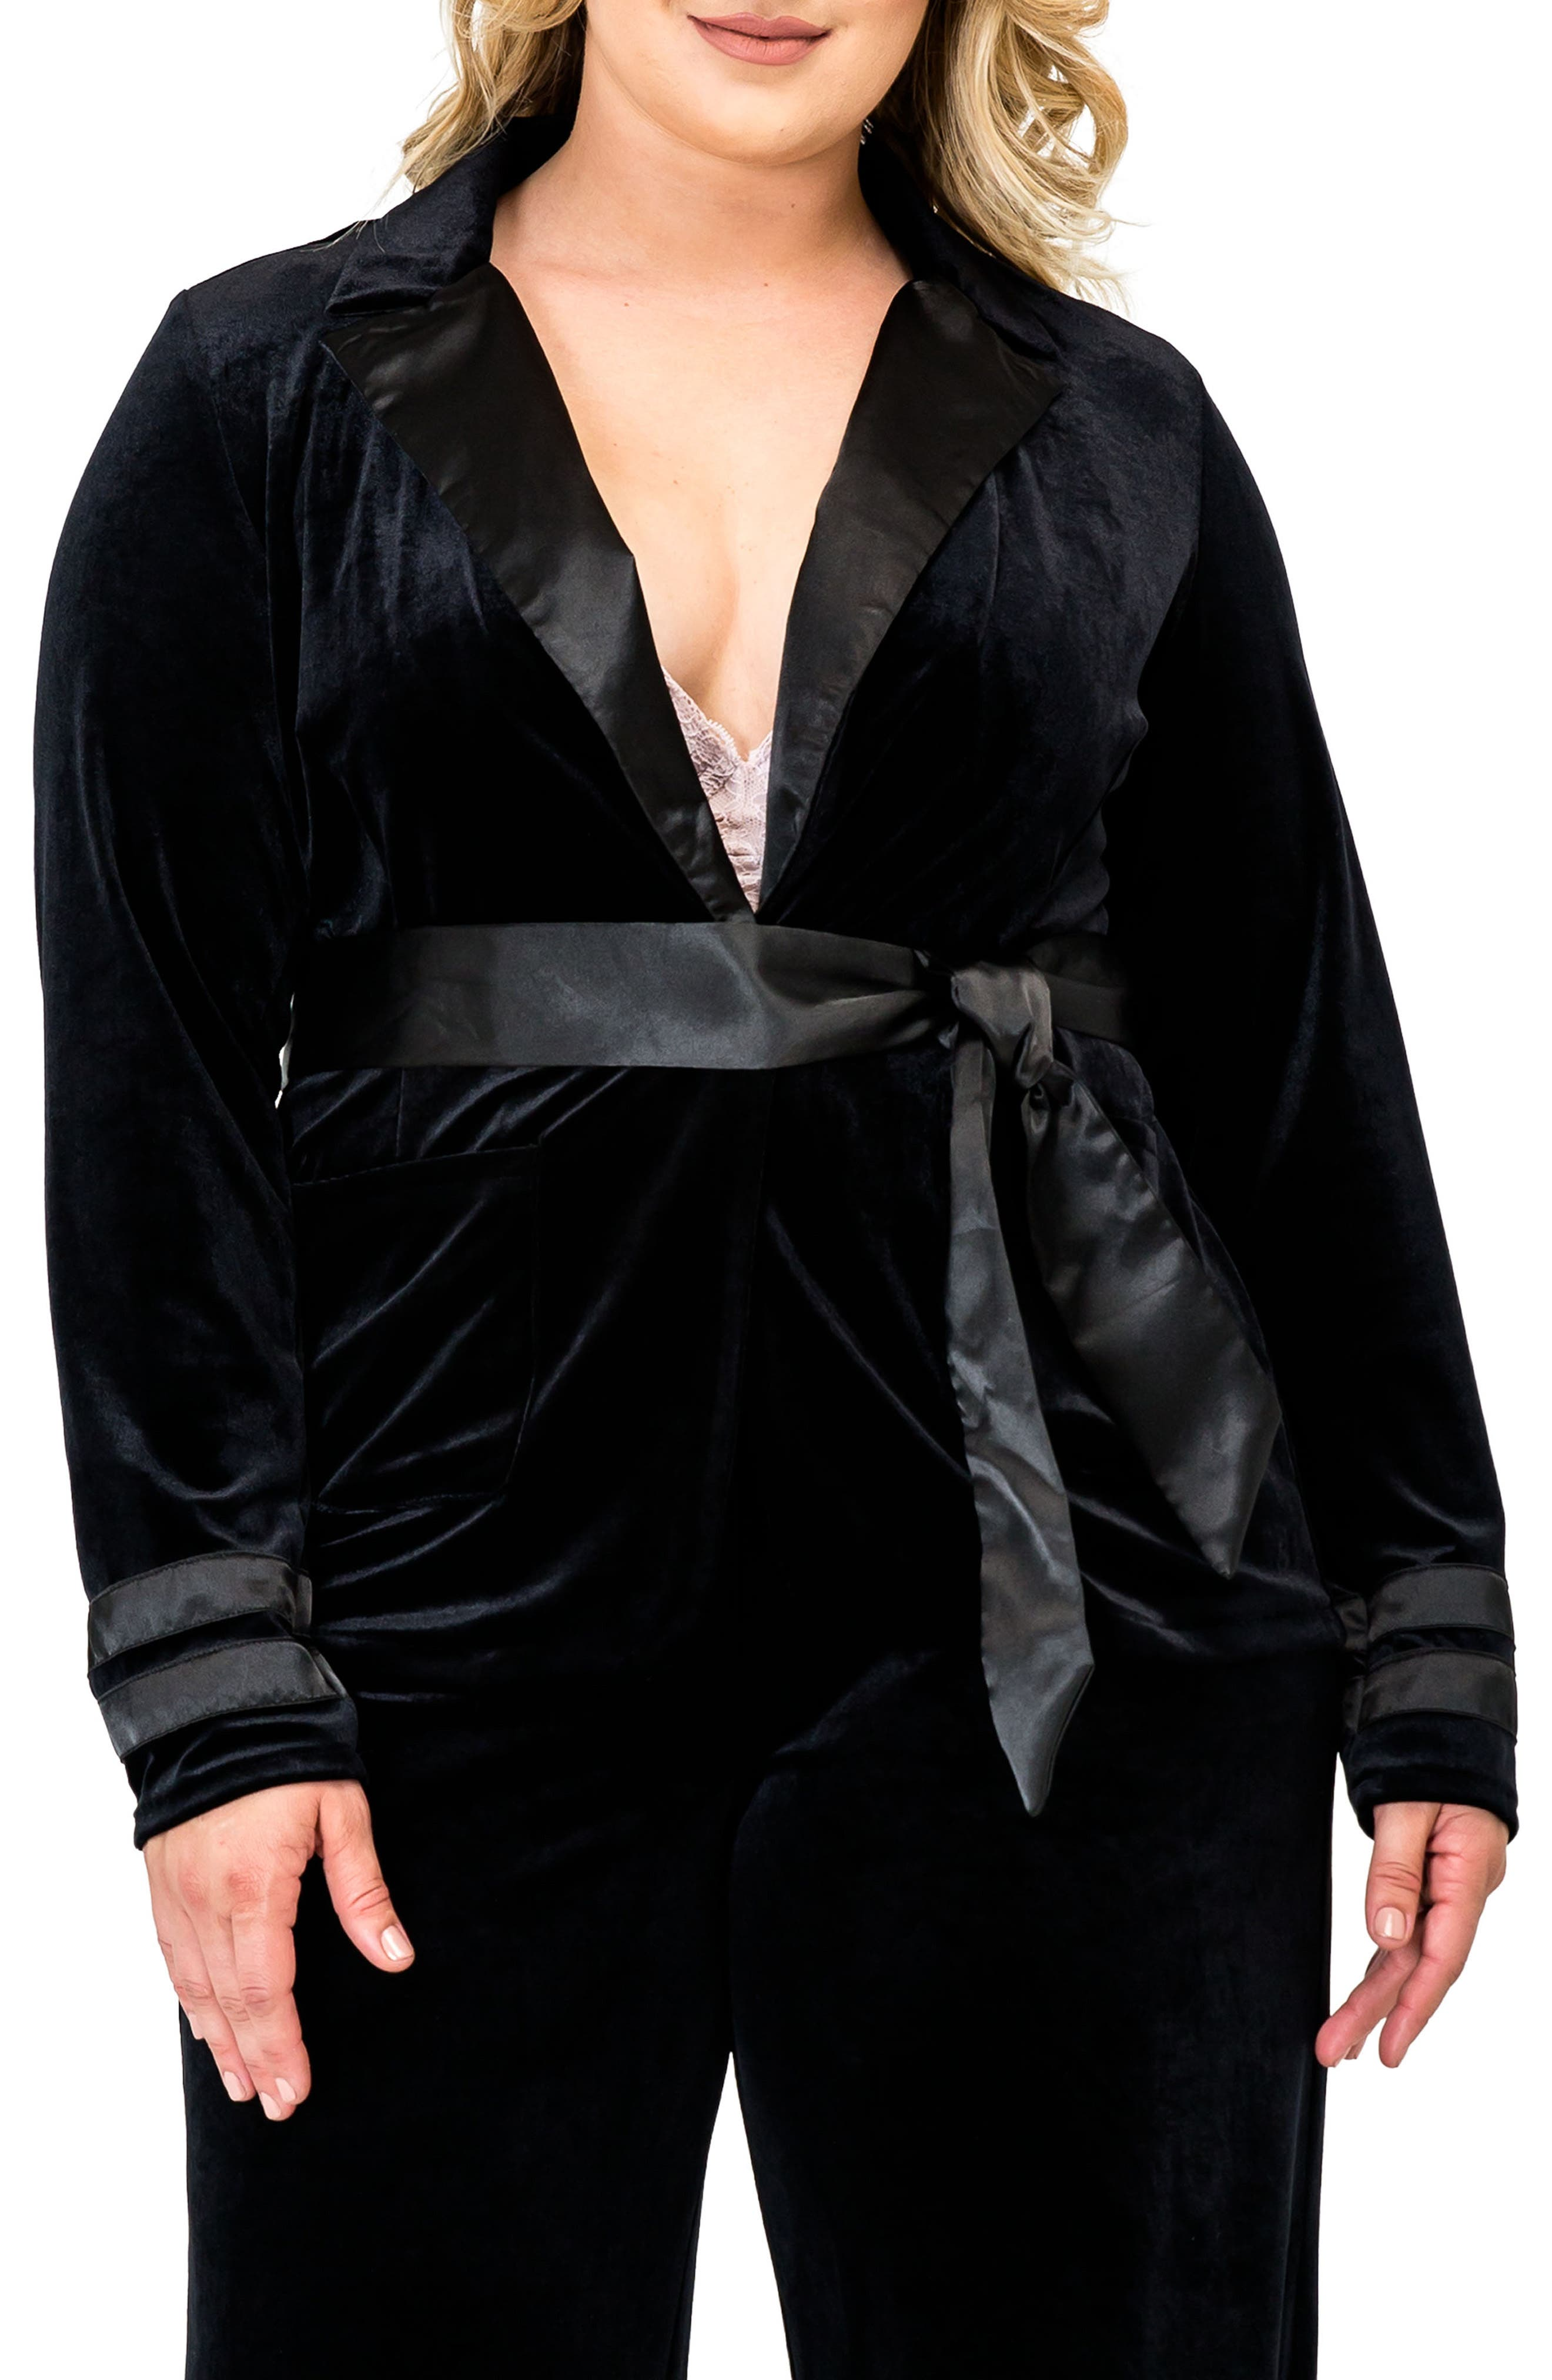 Lottie Velvet & Satin Jacket,                             Main thumbnail 1, color,                             BLACK